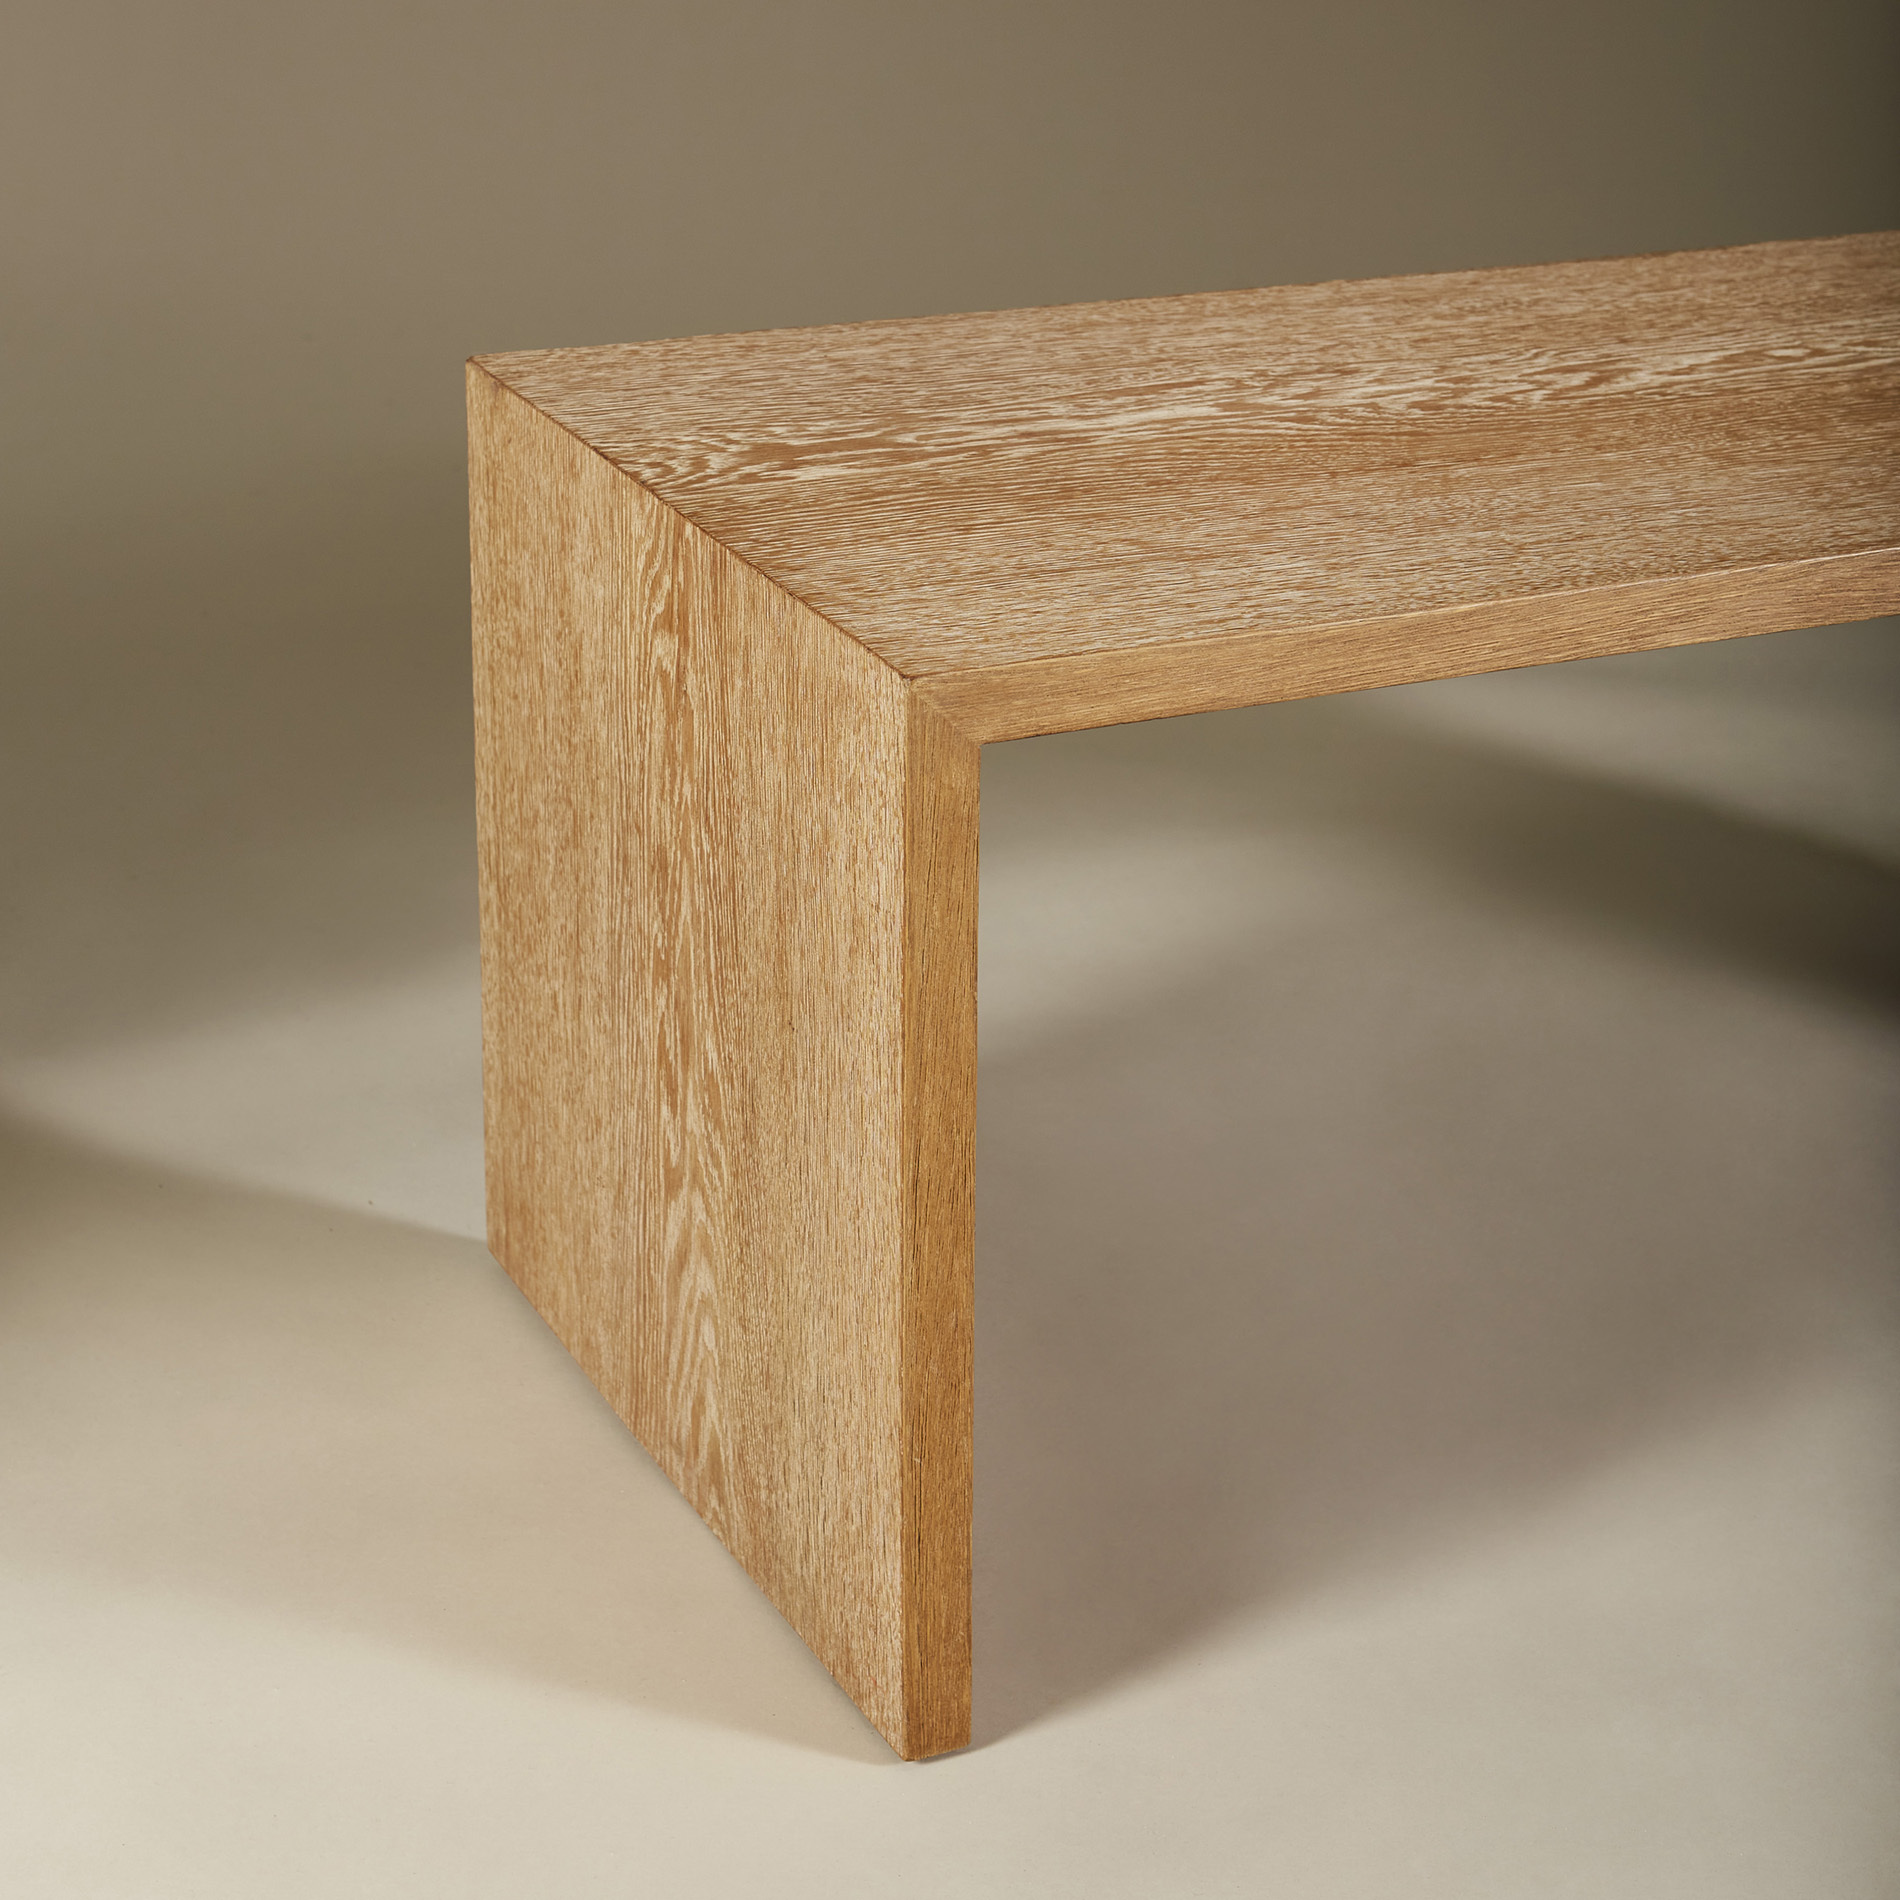 The image for Jean Michel Frank Benches 0113 V1